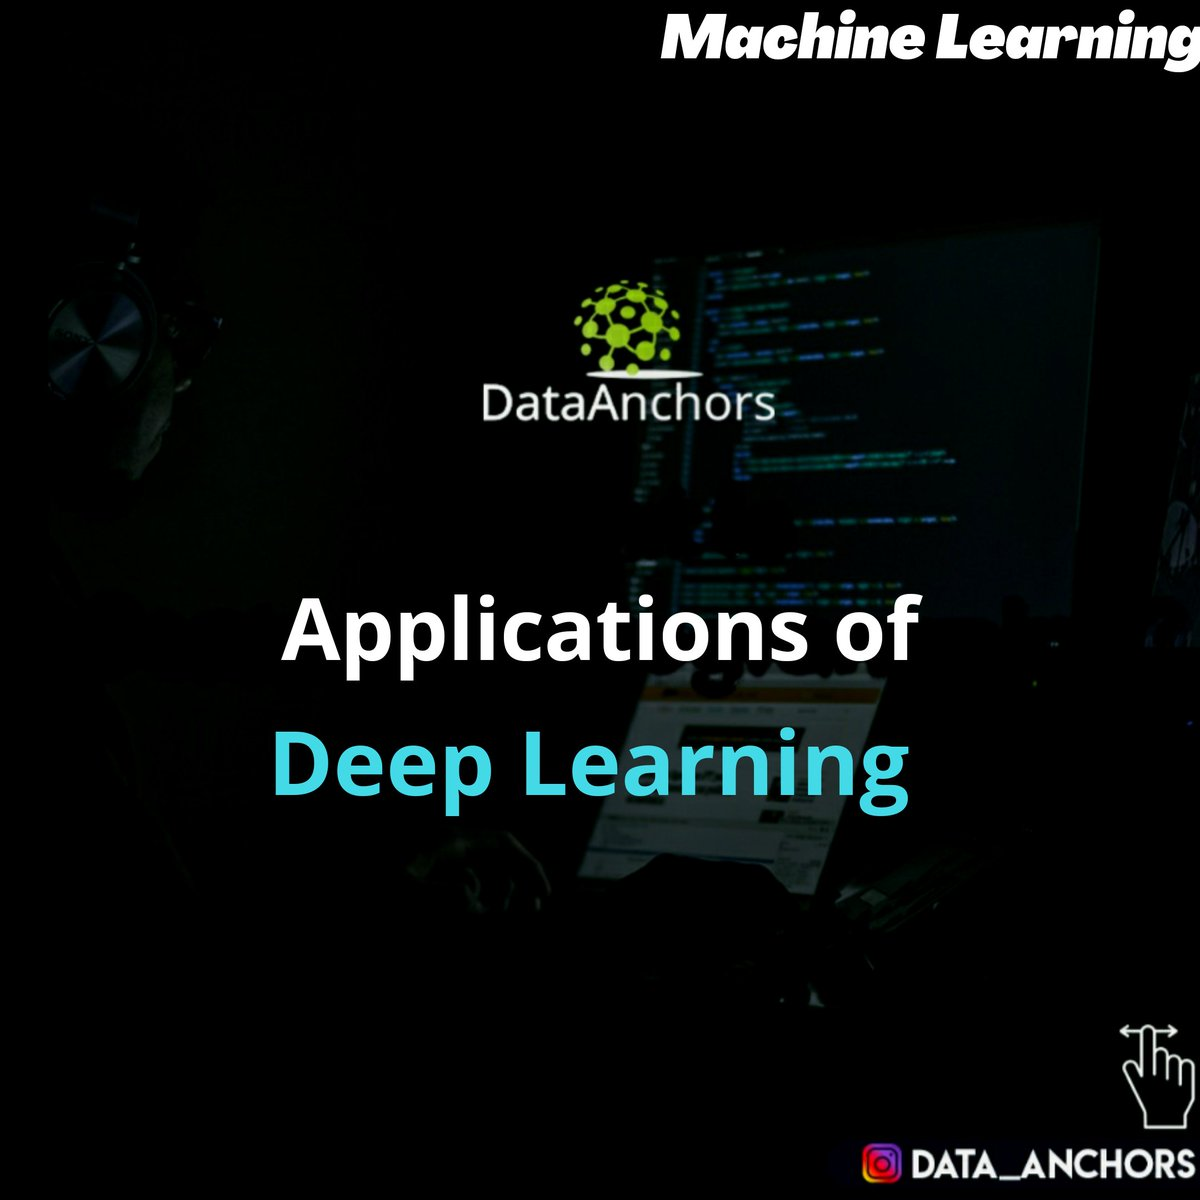 Applications of Deep Learning   #programminglanguages #computerscience #coding #inventions #programming #programmer #inventory #programminglife #codingbootcamp #codinglife #codingdays  #deeplearningalgorithms #dataanchors #applicationspic.twitter.com/JF2NmJ3cmT